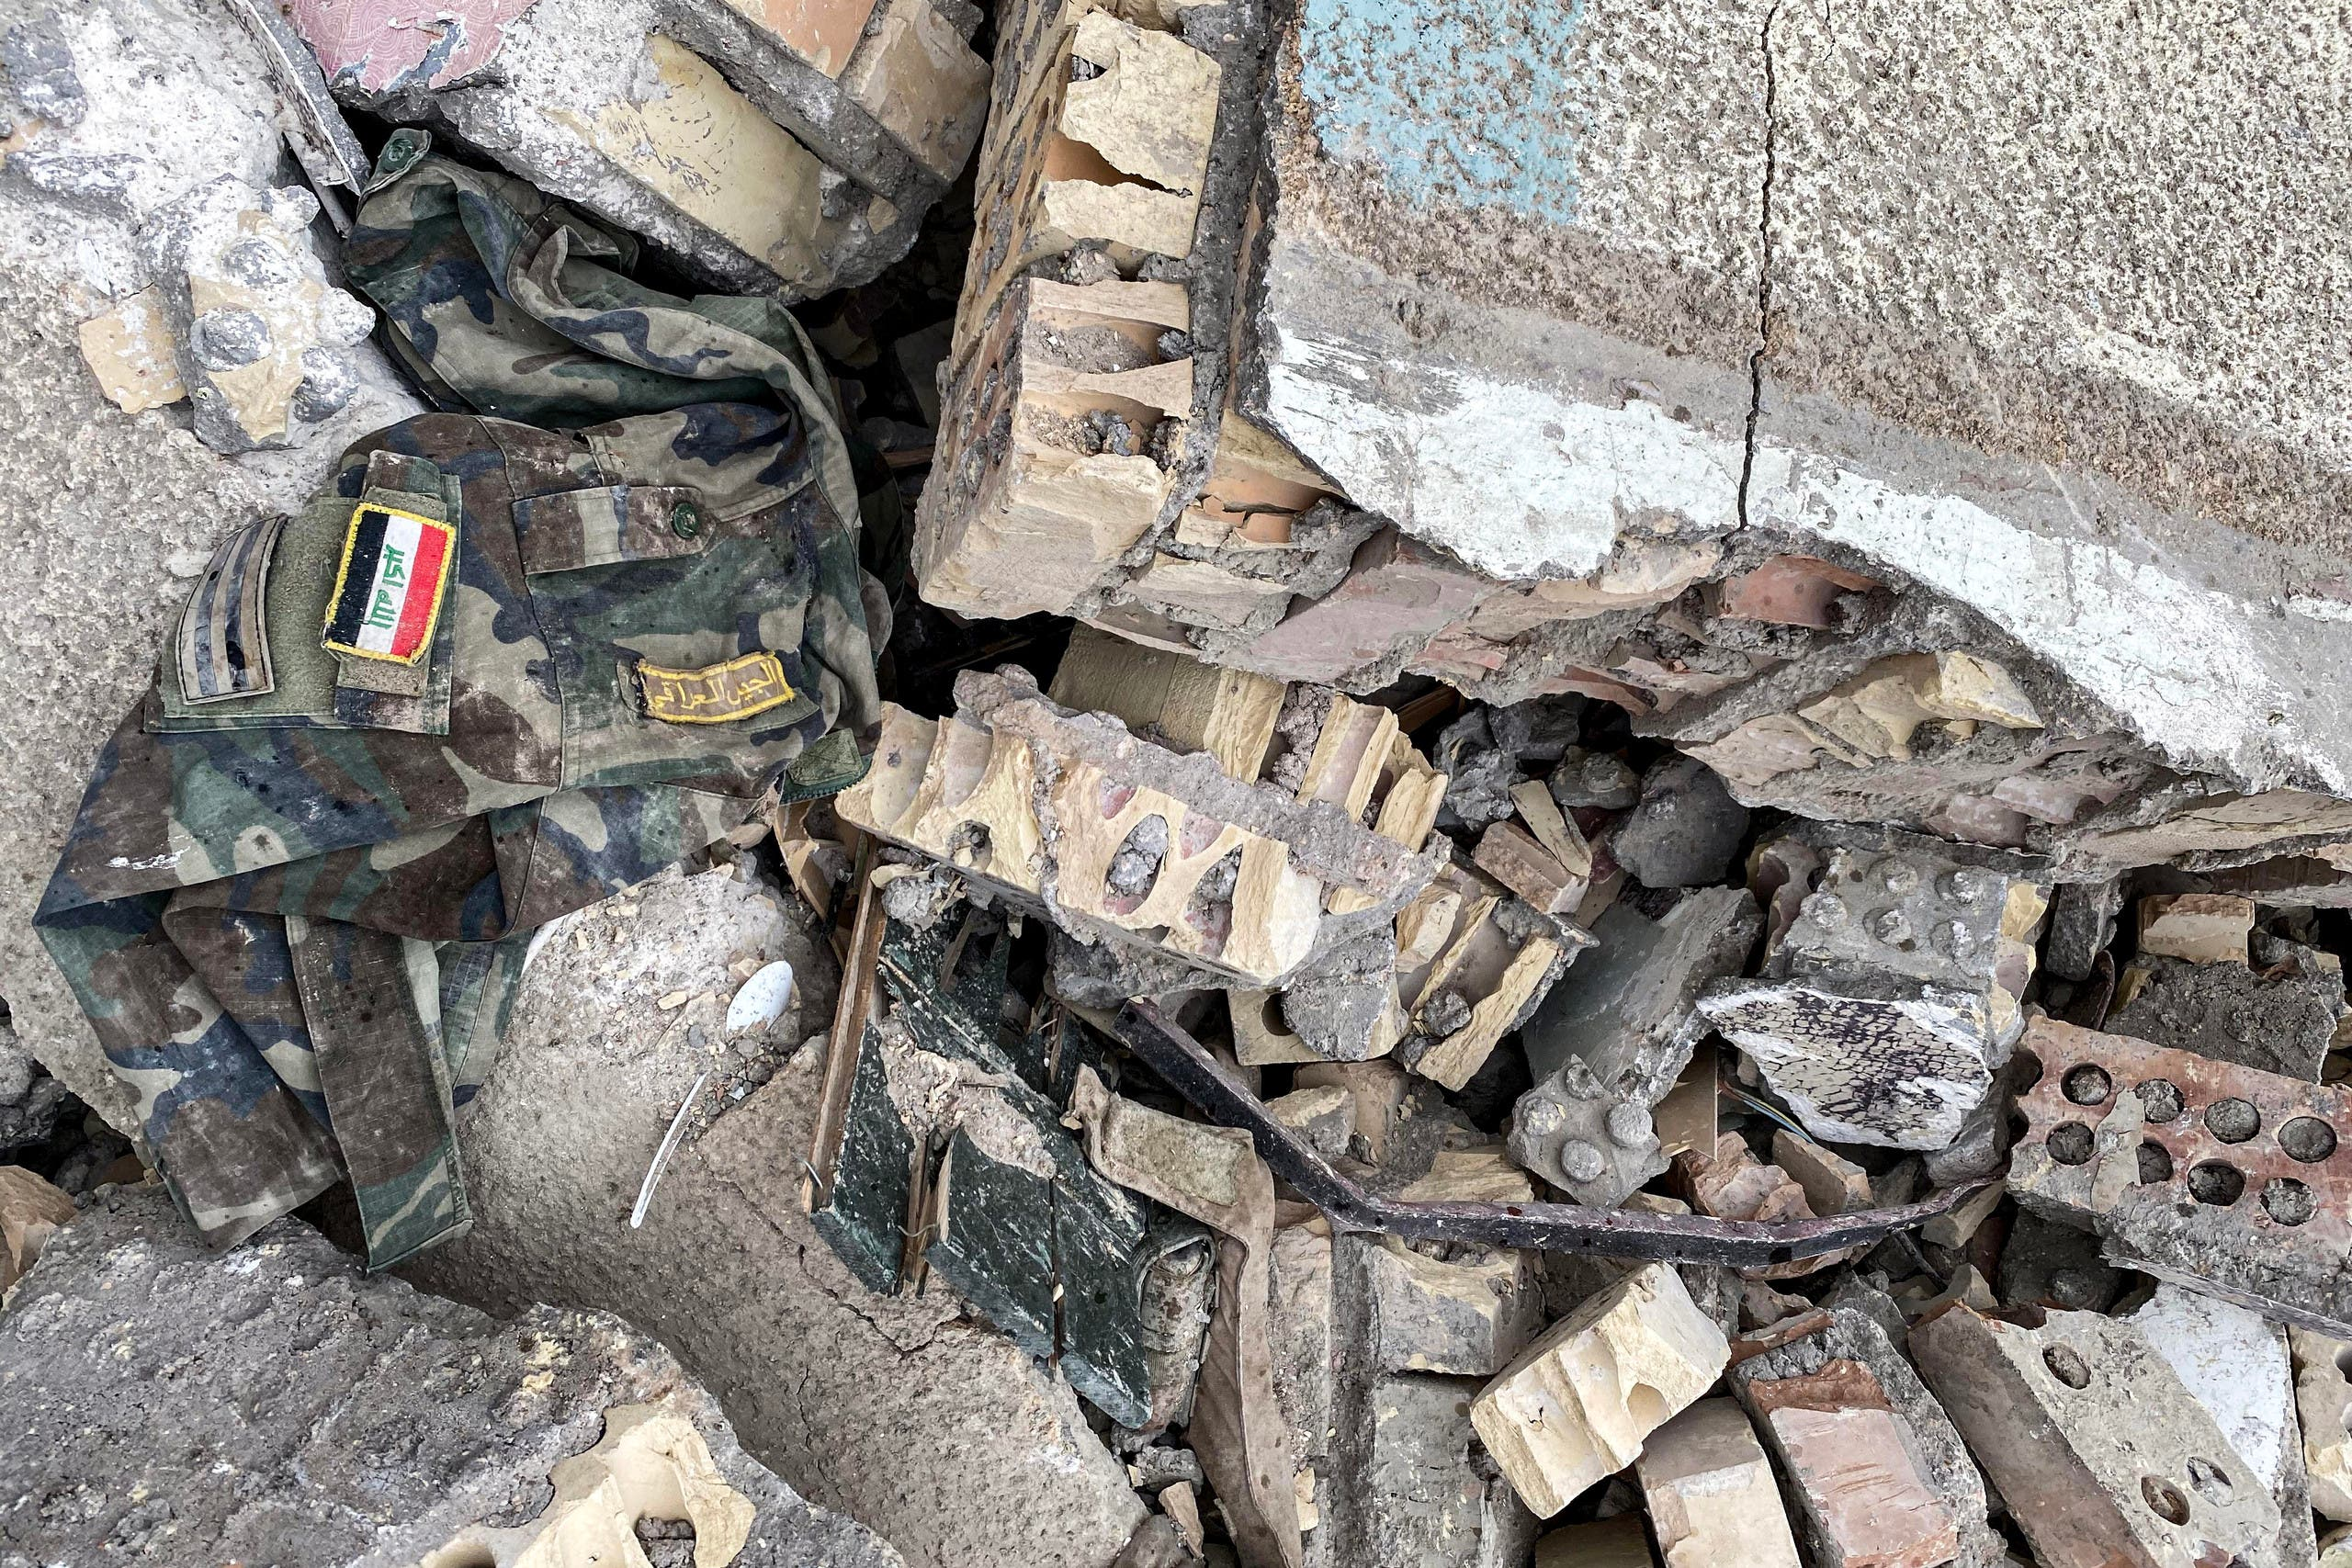 This picture taken on Friday shows a military uniform bearing in the insignia 'Iraqi Army' amidst rubble in the aftermath of US military air strikes at a militarized zone in the Jurf al-Sakhr area in Iraq's Babylon province controlled by Kataeb Hezbollah (AFP